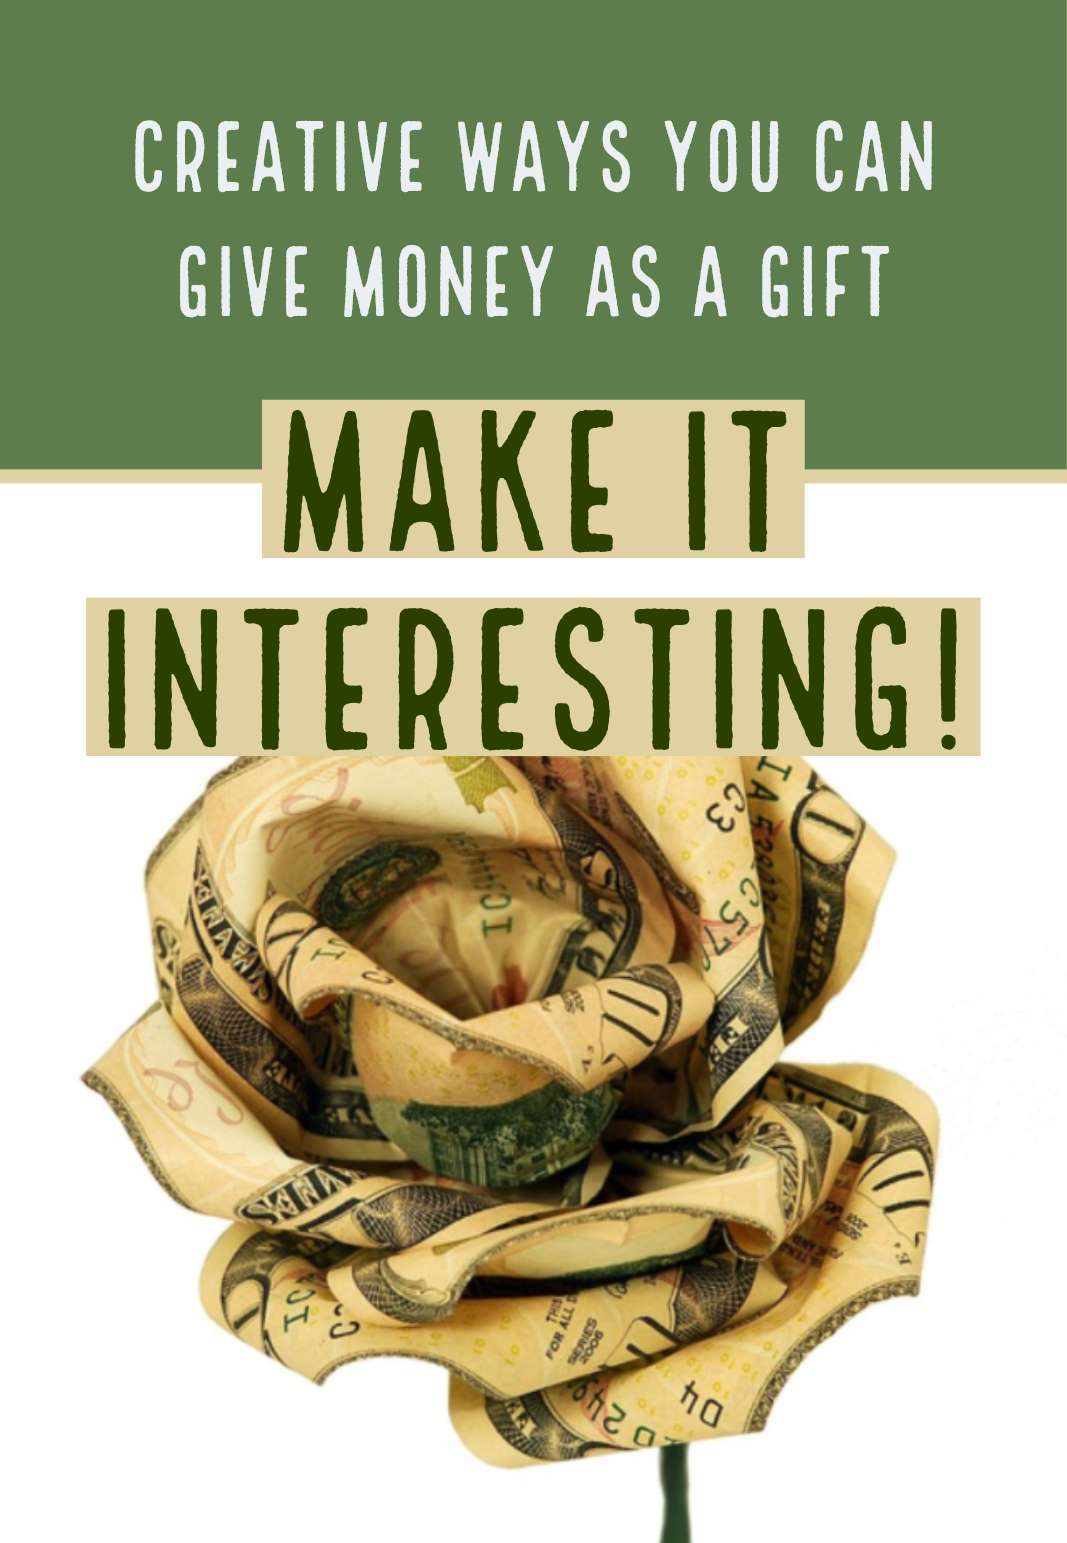 Original Ways You Can Give Money as a Gift